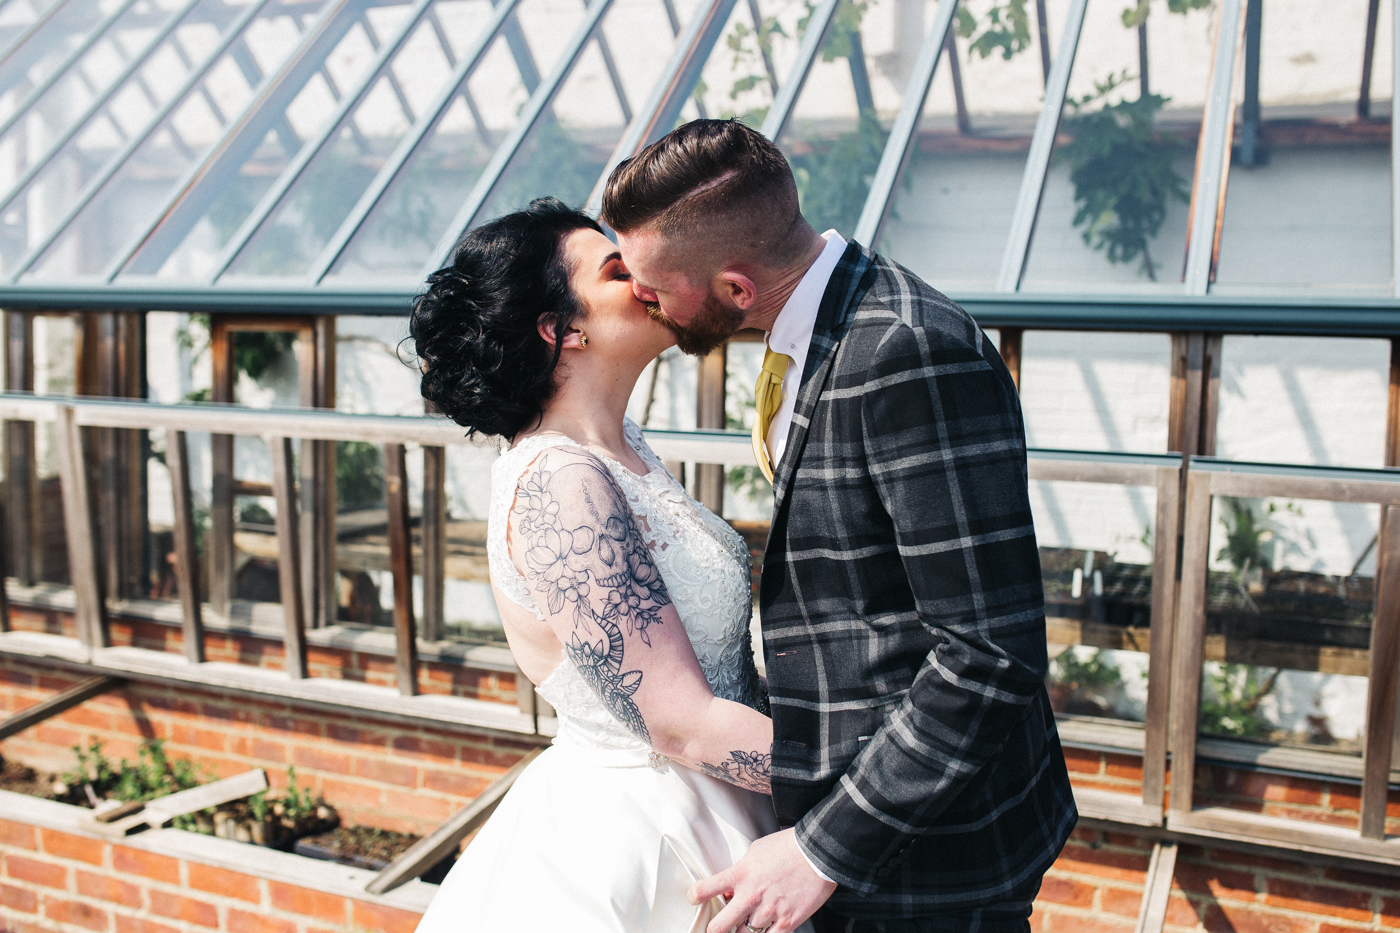 the bride and groom kiss in front of the victorian greenhouse. preston park museum wedding stockton teesside middlesbrough wedding photographer